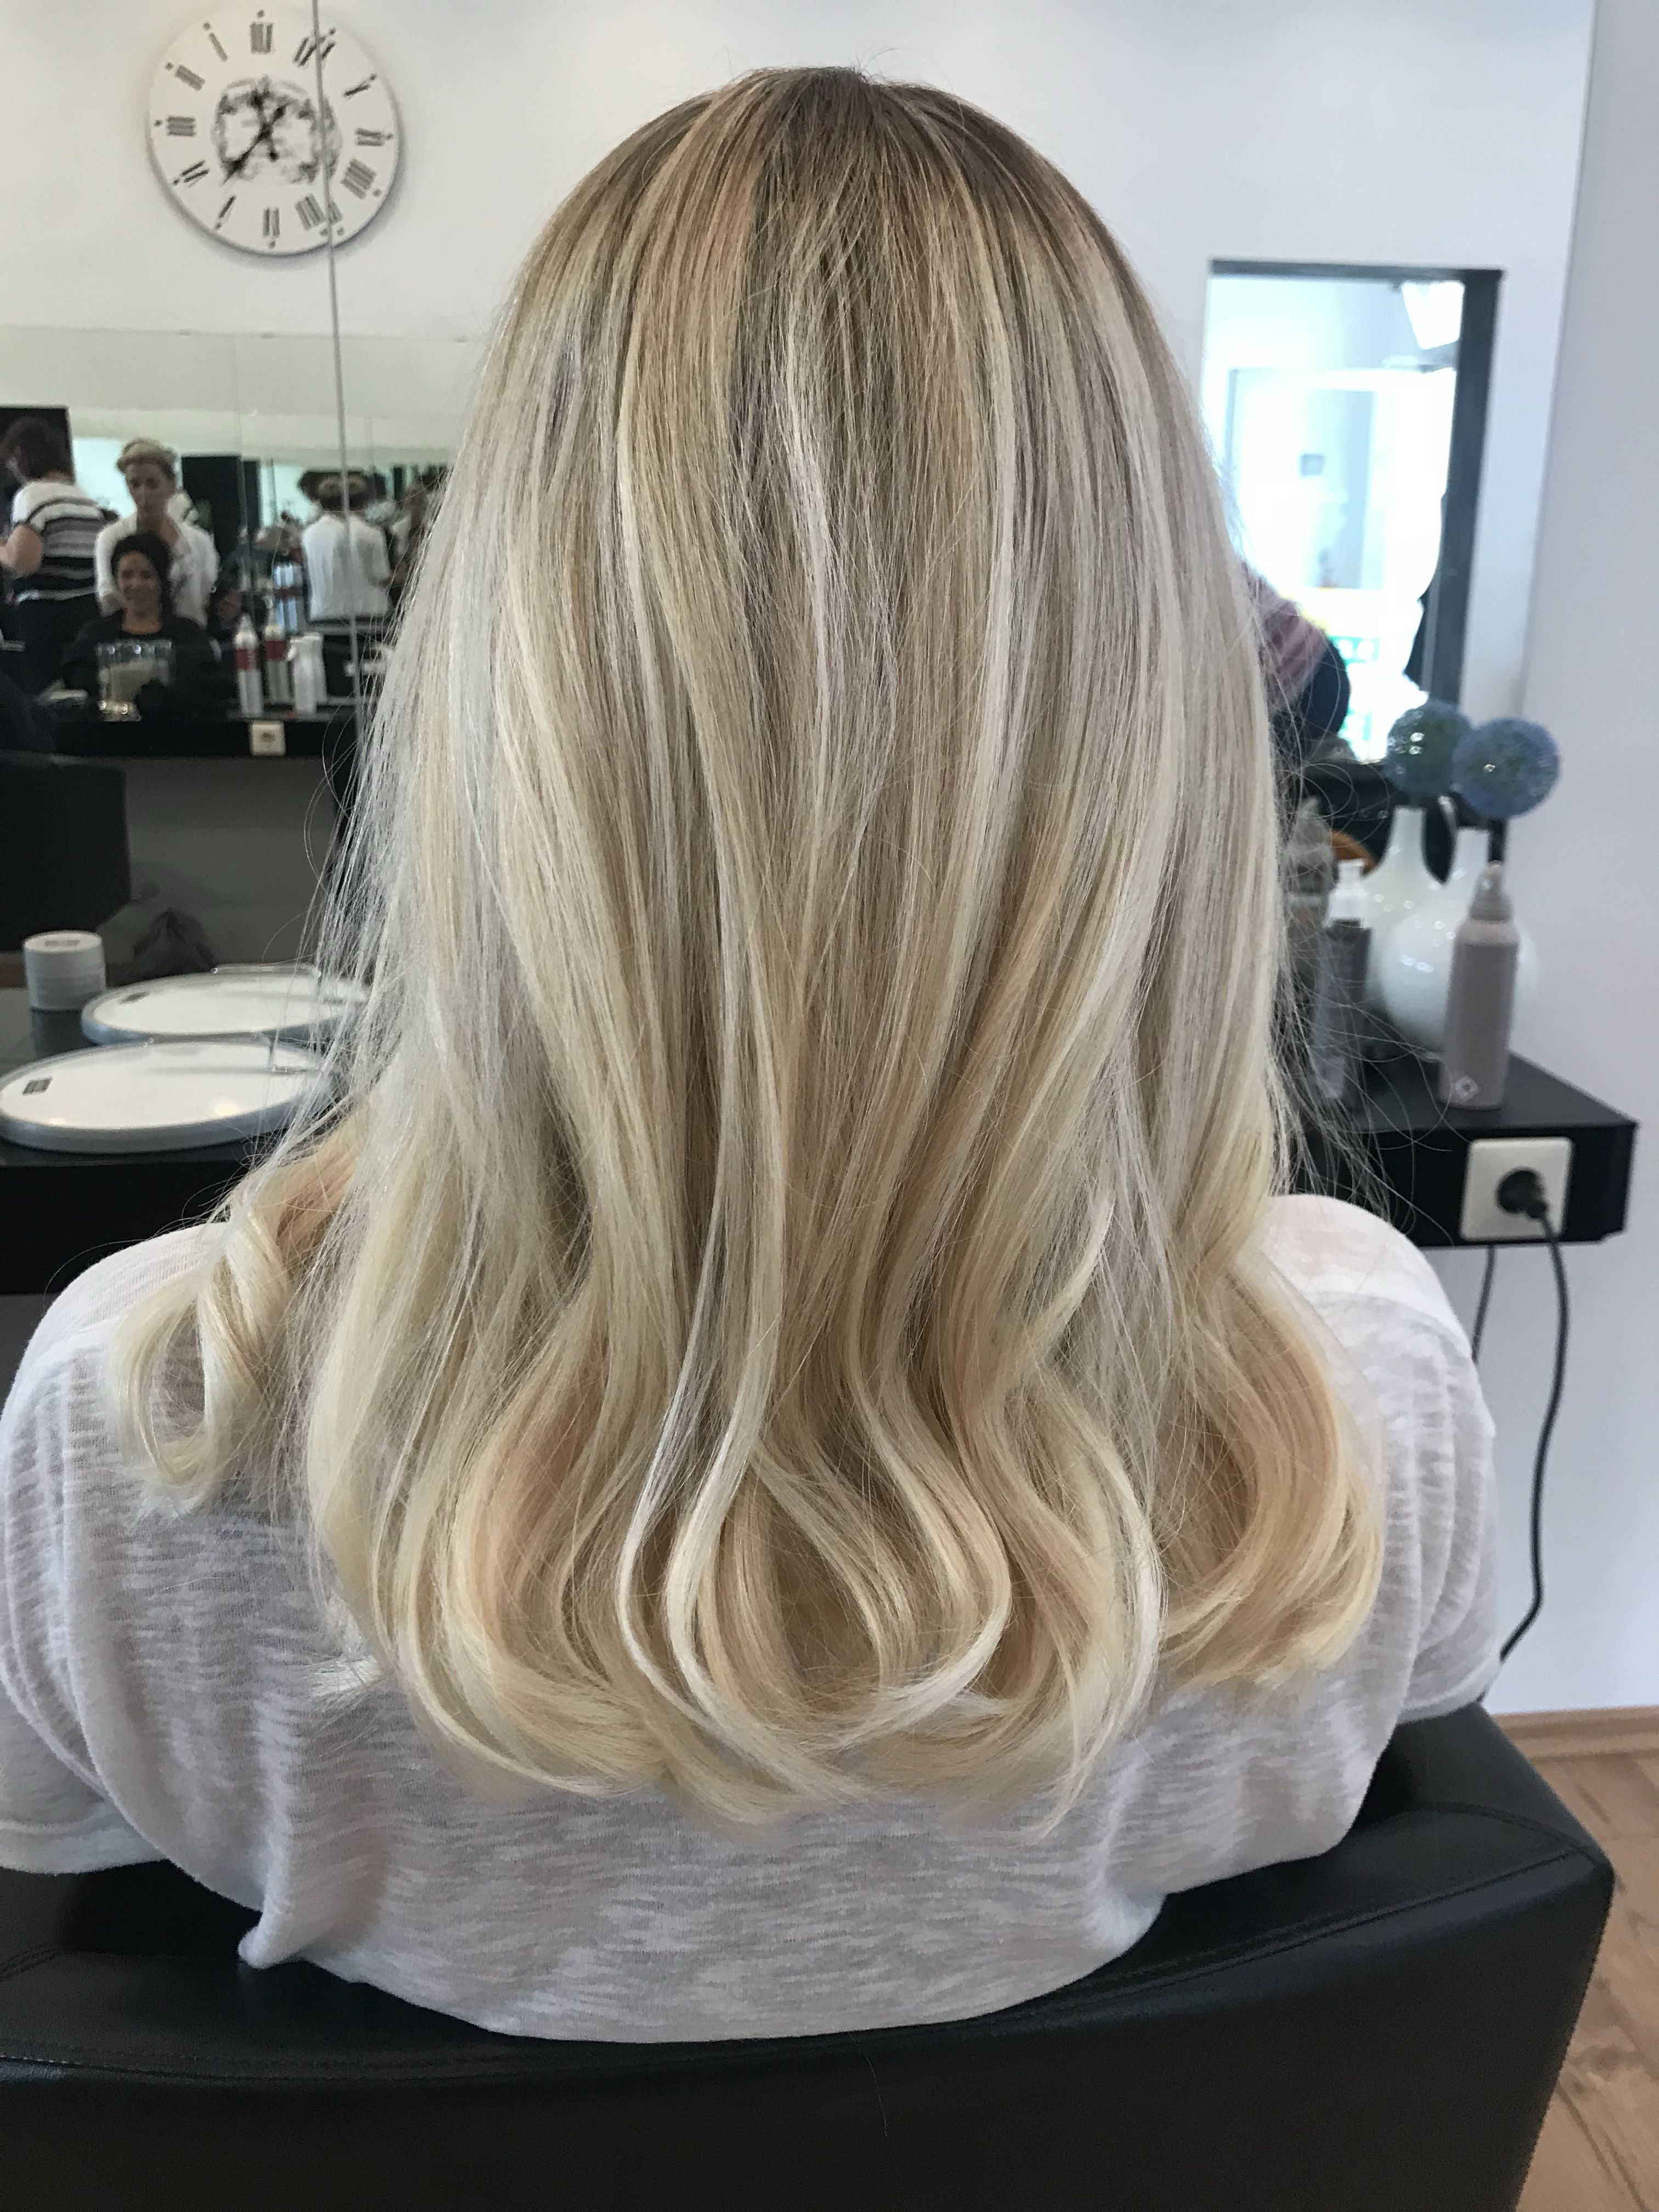 Pin By Mt On Hair In 2019 Blonde Hair Hair Blonde Hair Looks